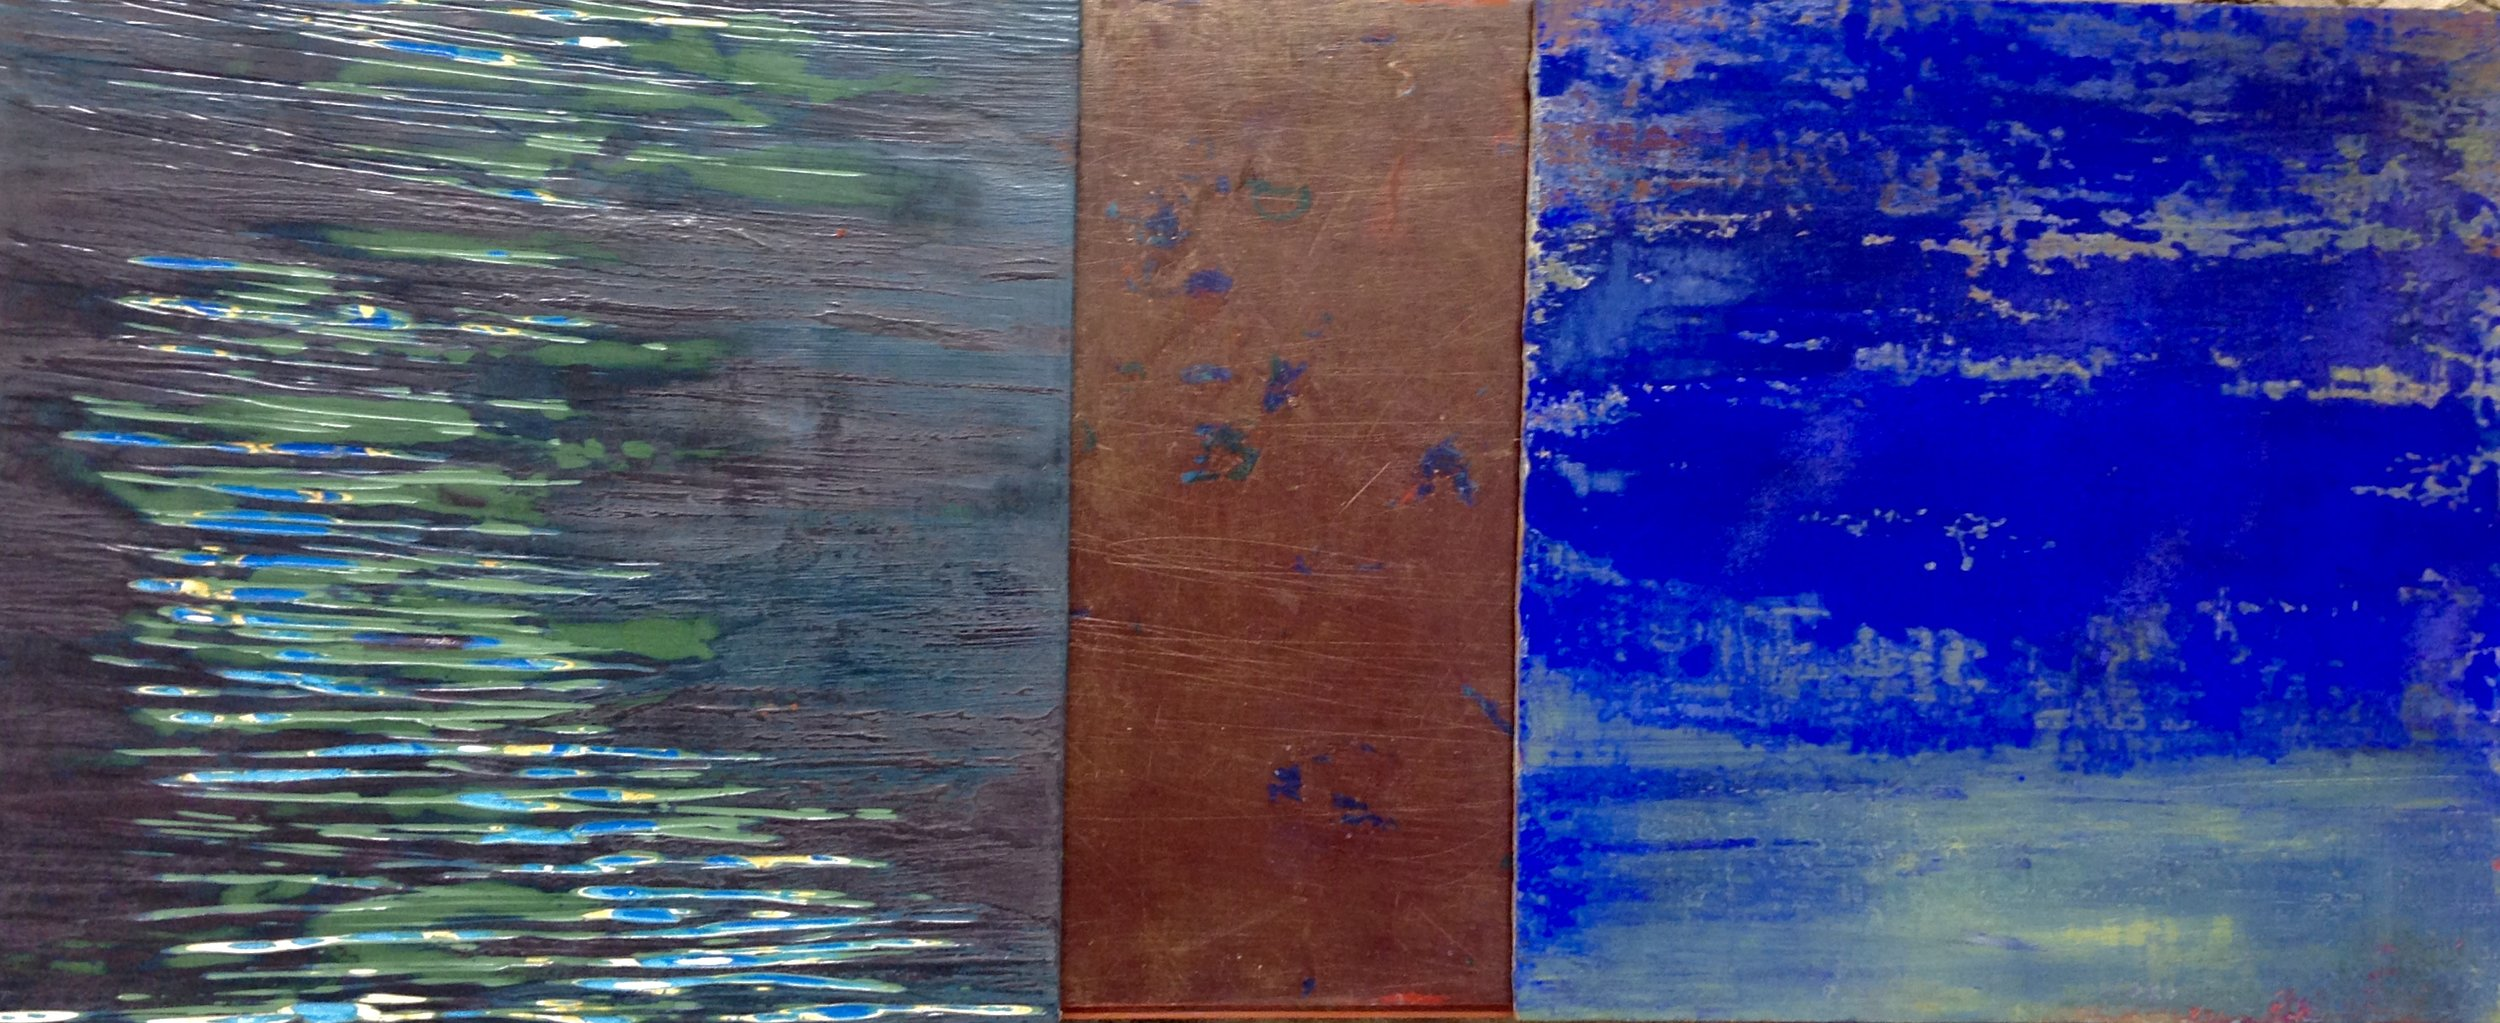 Rebecca Spivack     Triptych 3    2018  Integrated colored plaster and pigment construction  Signed and dated by the artist,  verso   12 x 29 inches